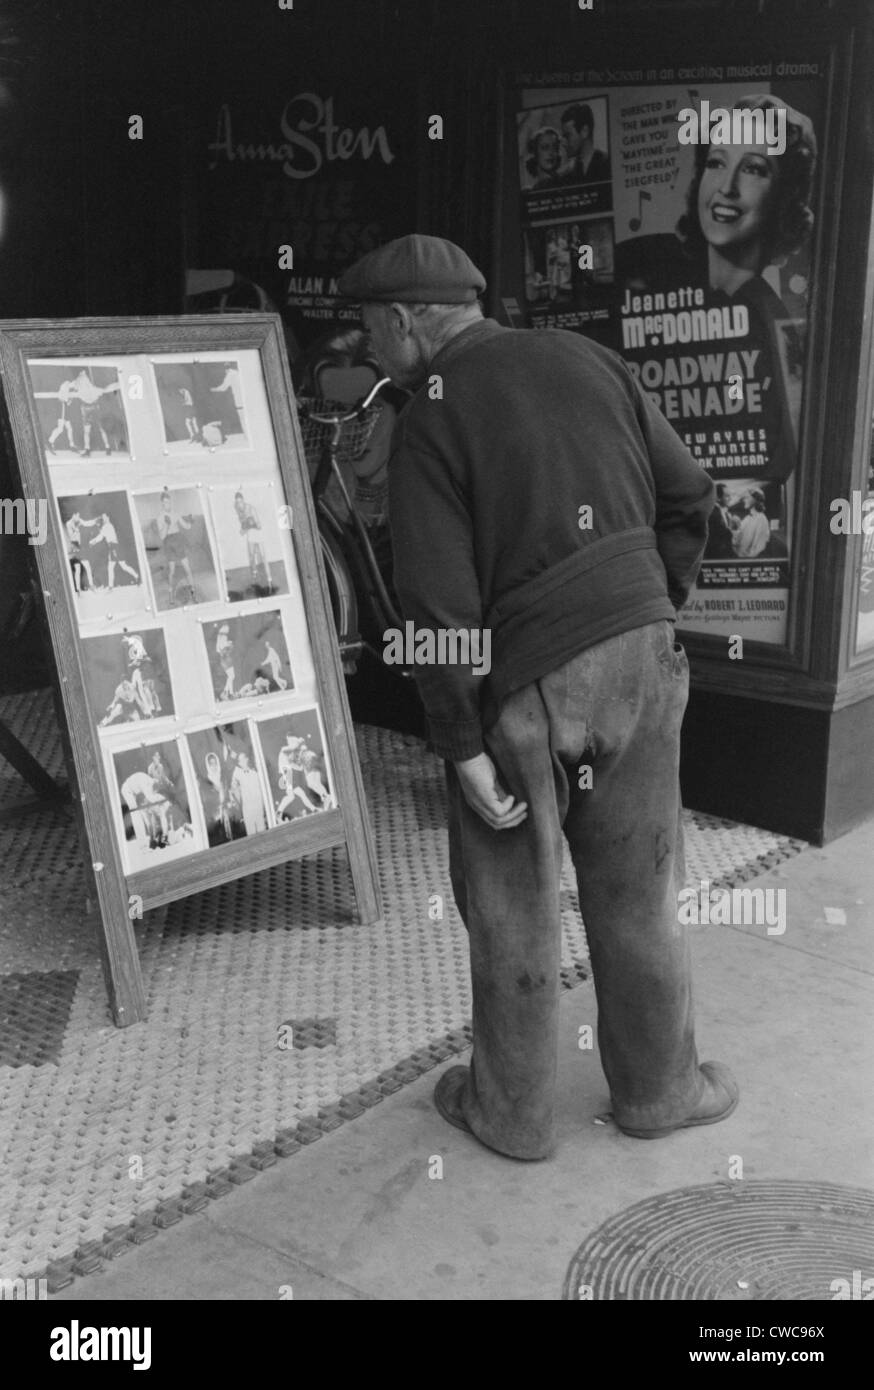 Elderly man with patches clothing looking at stills of Joe Lewis fight. Windsor Locks Connecticut. Oct. 1939. - Stock Image